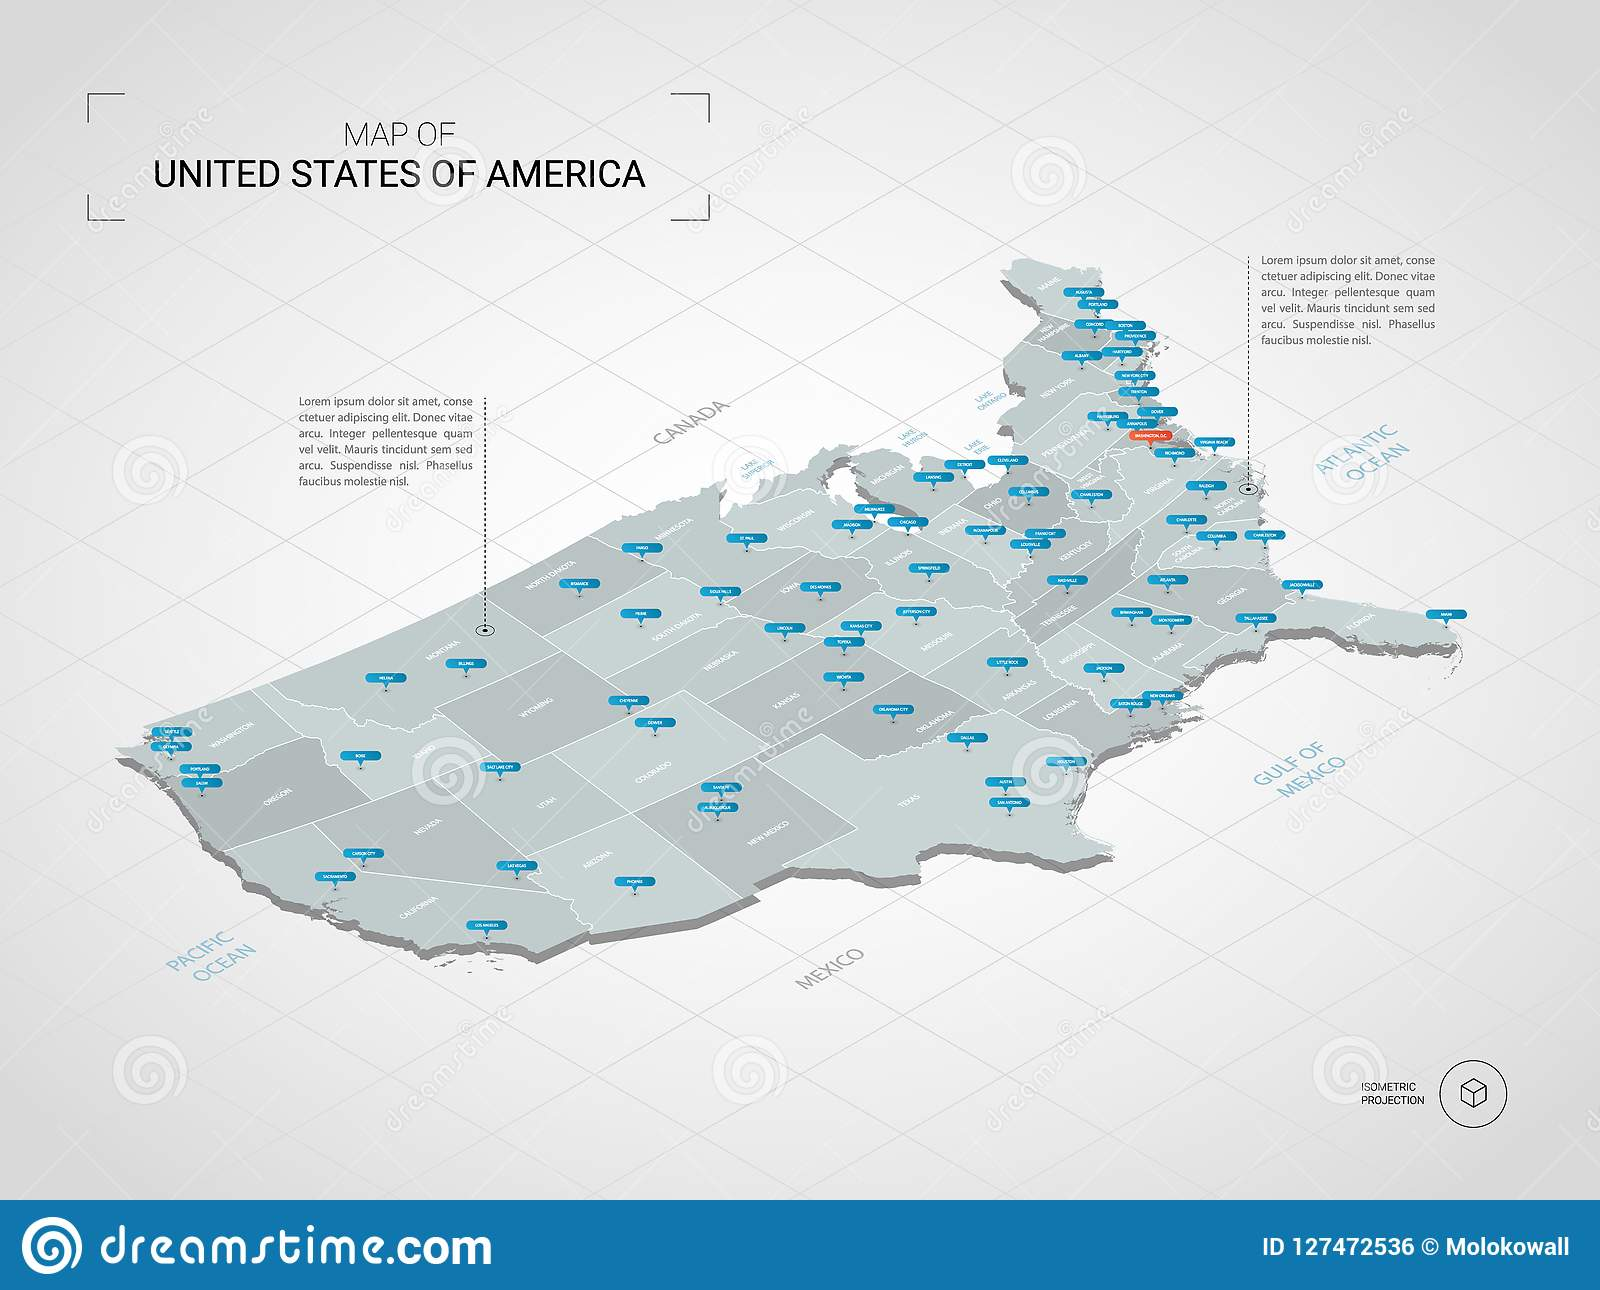 Isometric United States Of America Map With City Names And Admin ...